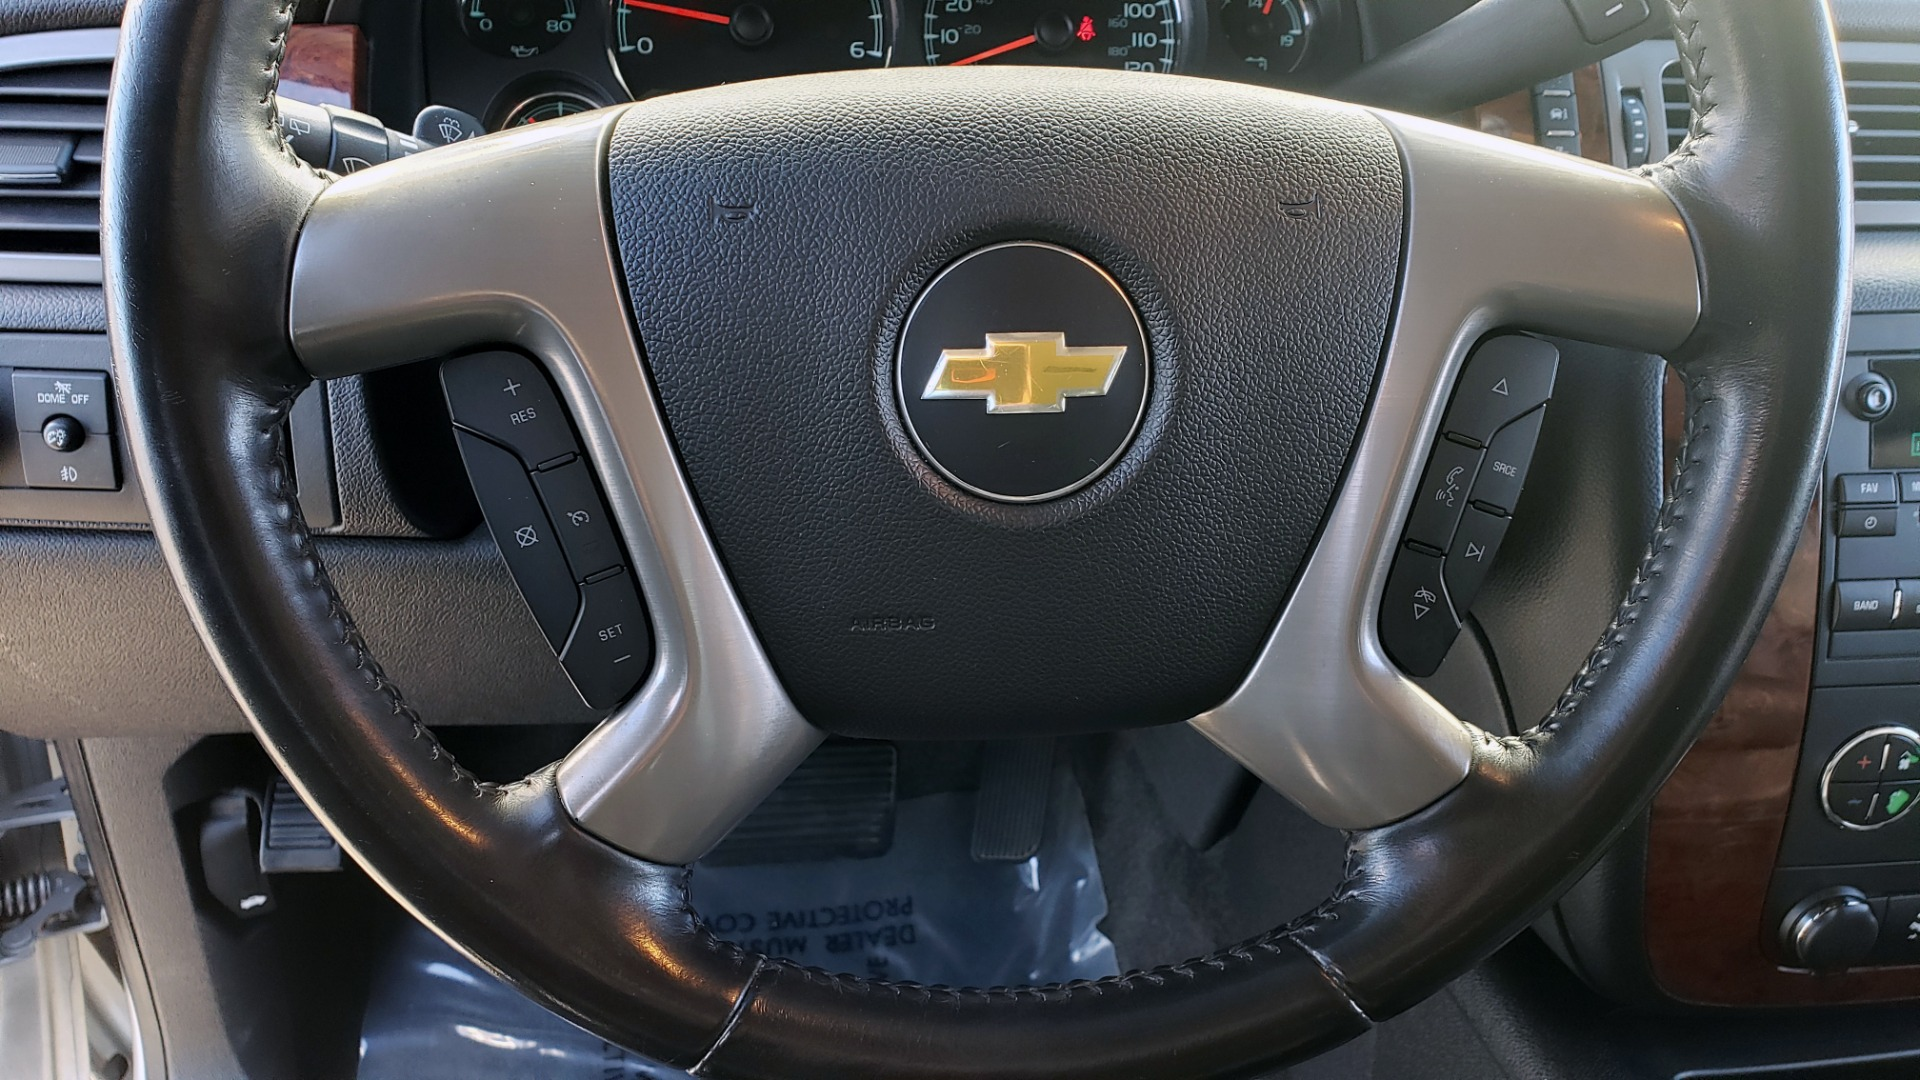 Used 2013 Chevrolet SUBURBAN LT / 2WD / 5.3L V8 / 6-SPD AUTO / LEATHER 3-ROW SEATS for sale Sold at Formula Imports in Charlotte NC 28227 40